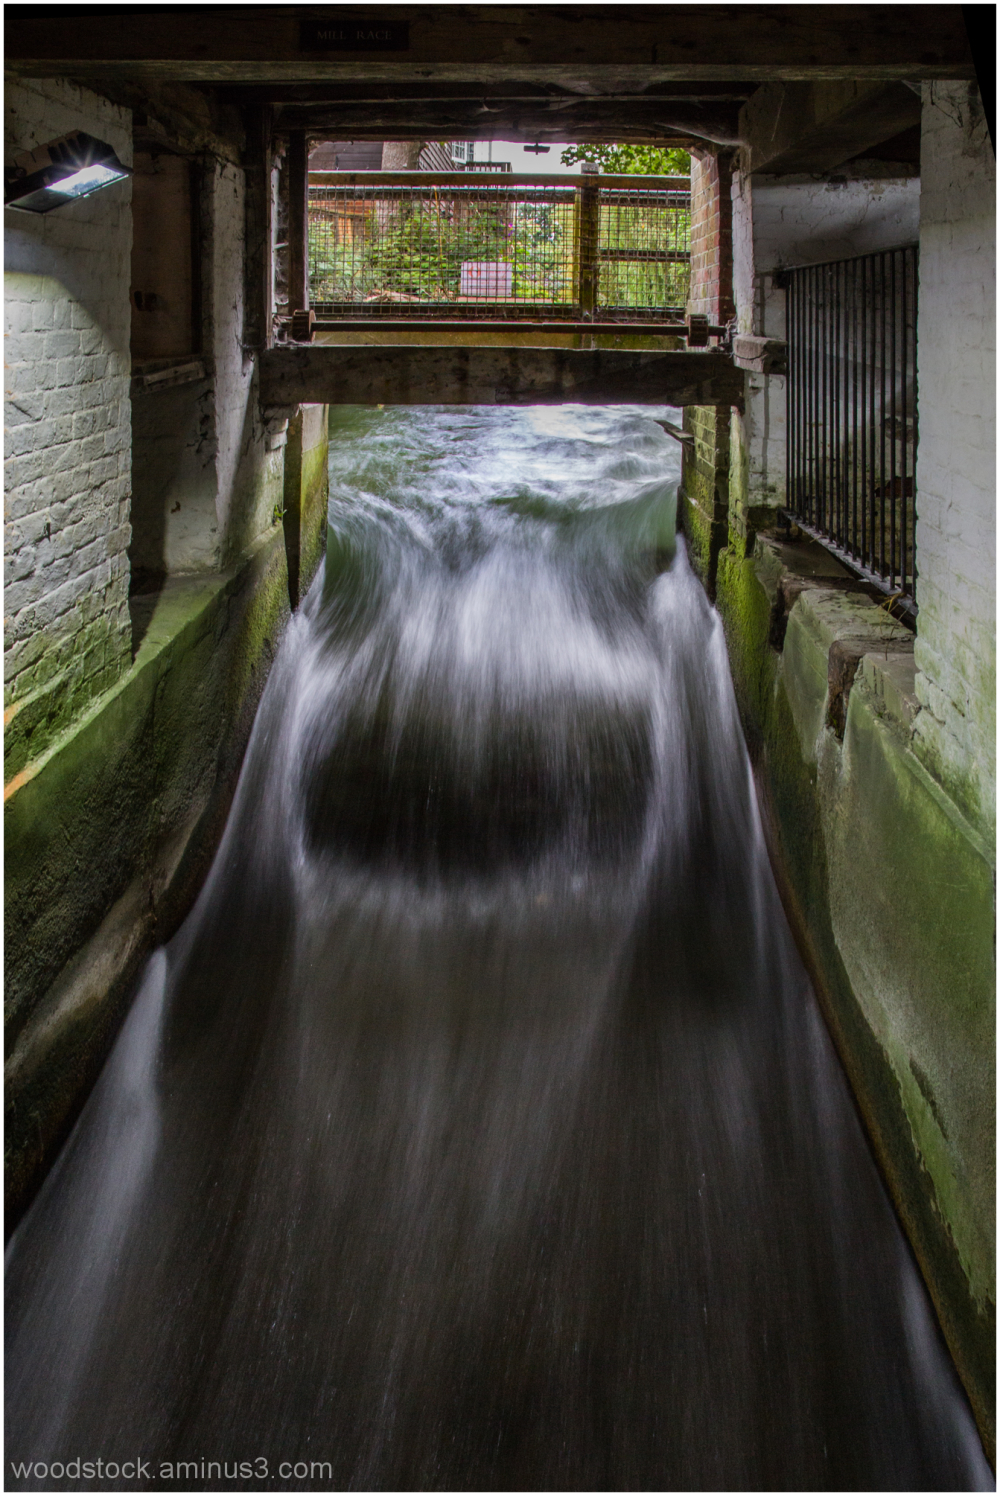 The Mill Race